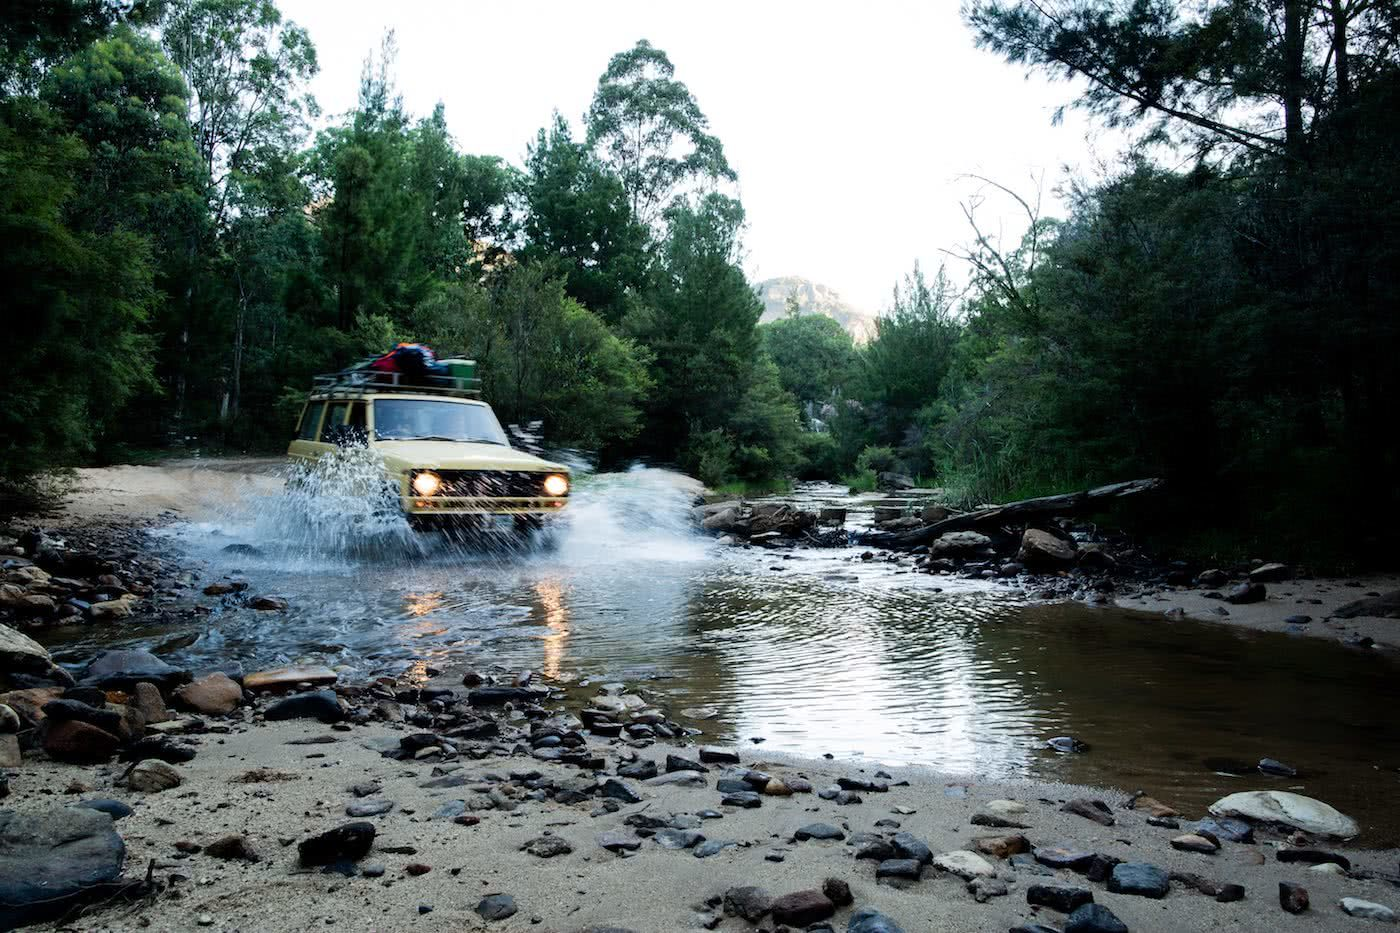 Canyoning In Search Of A Good Beer Harriet Farkash, Osprey Adventure Grant, campsite, blue mountains, car, creek